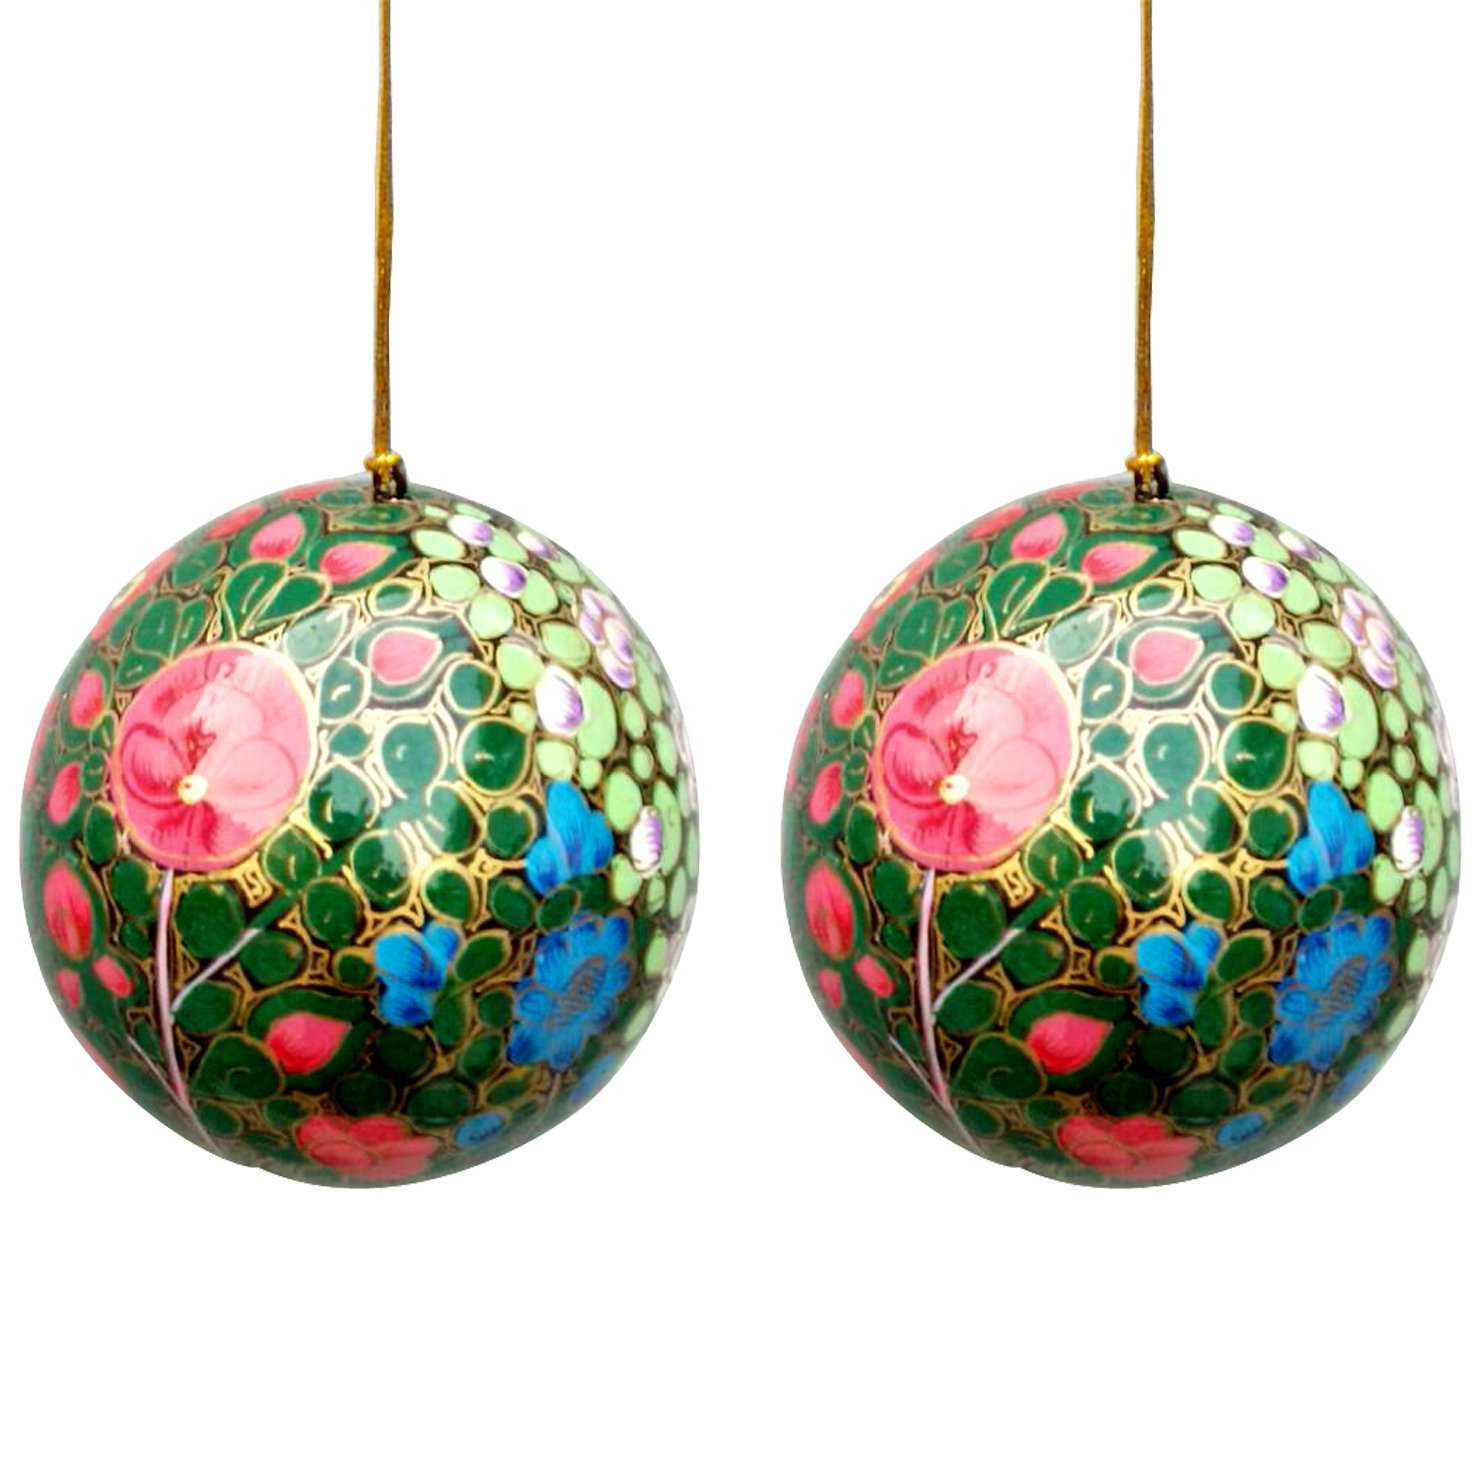 Decorative Items Christmas Decorative Items India Indiepedia Org